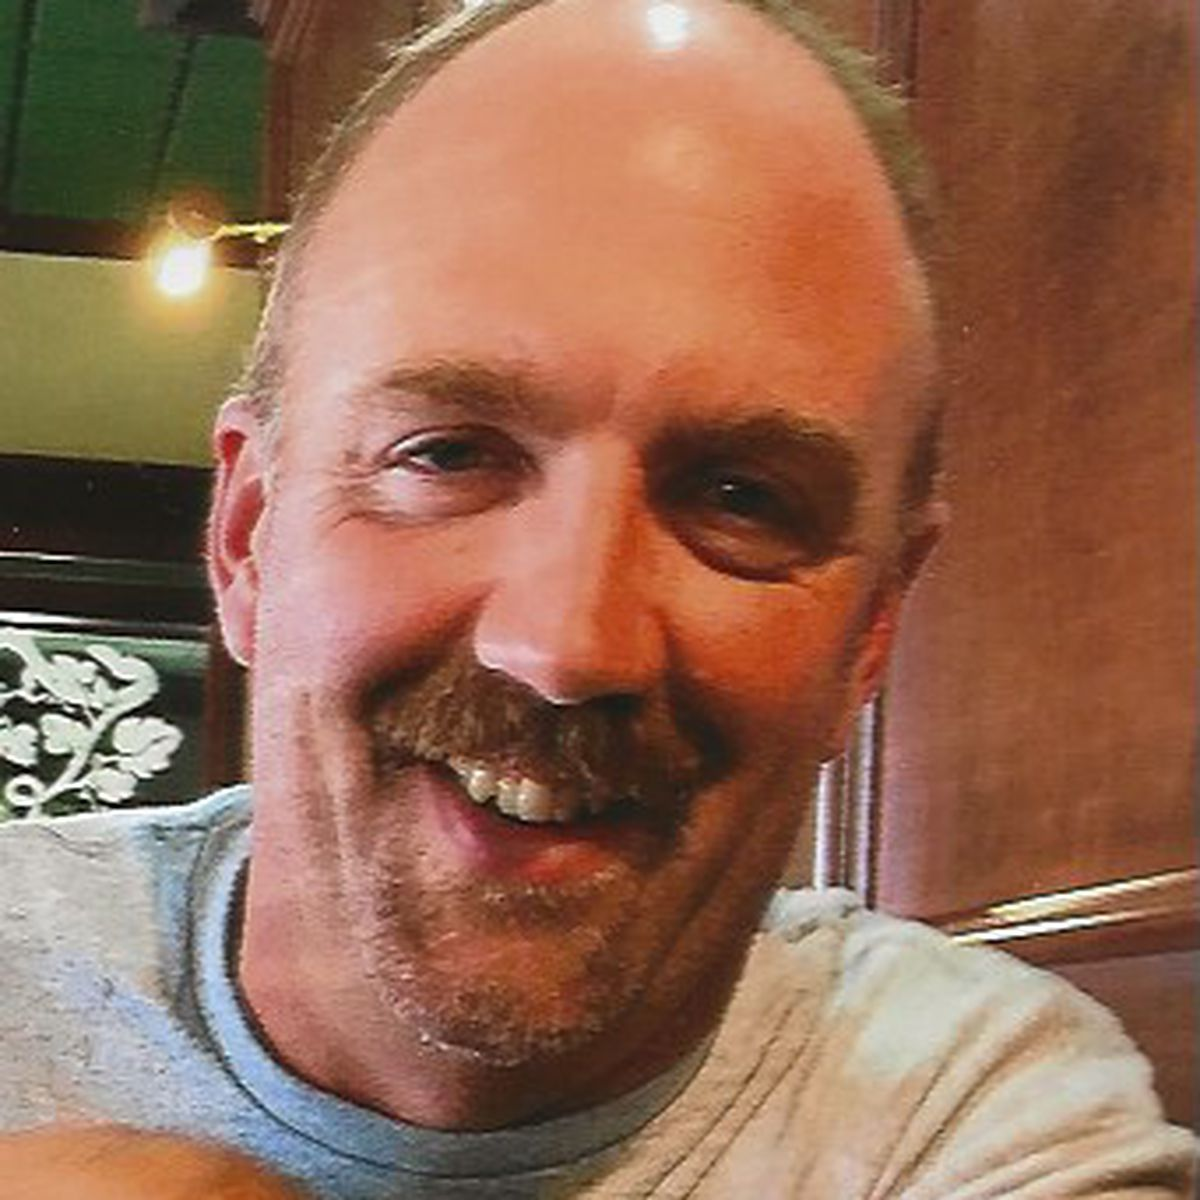 James K. Stuckey II, 50, of Black River